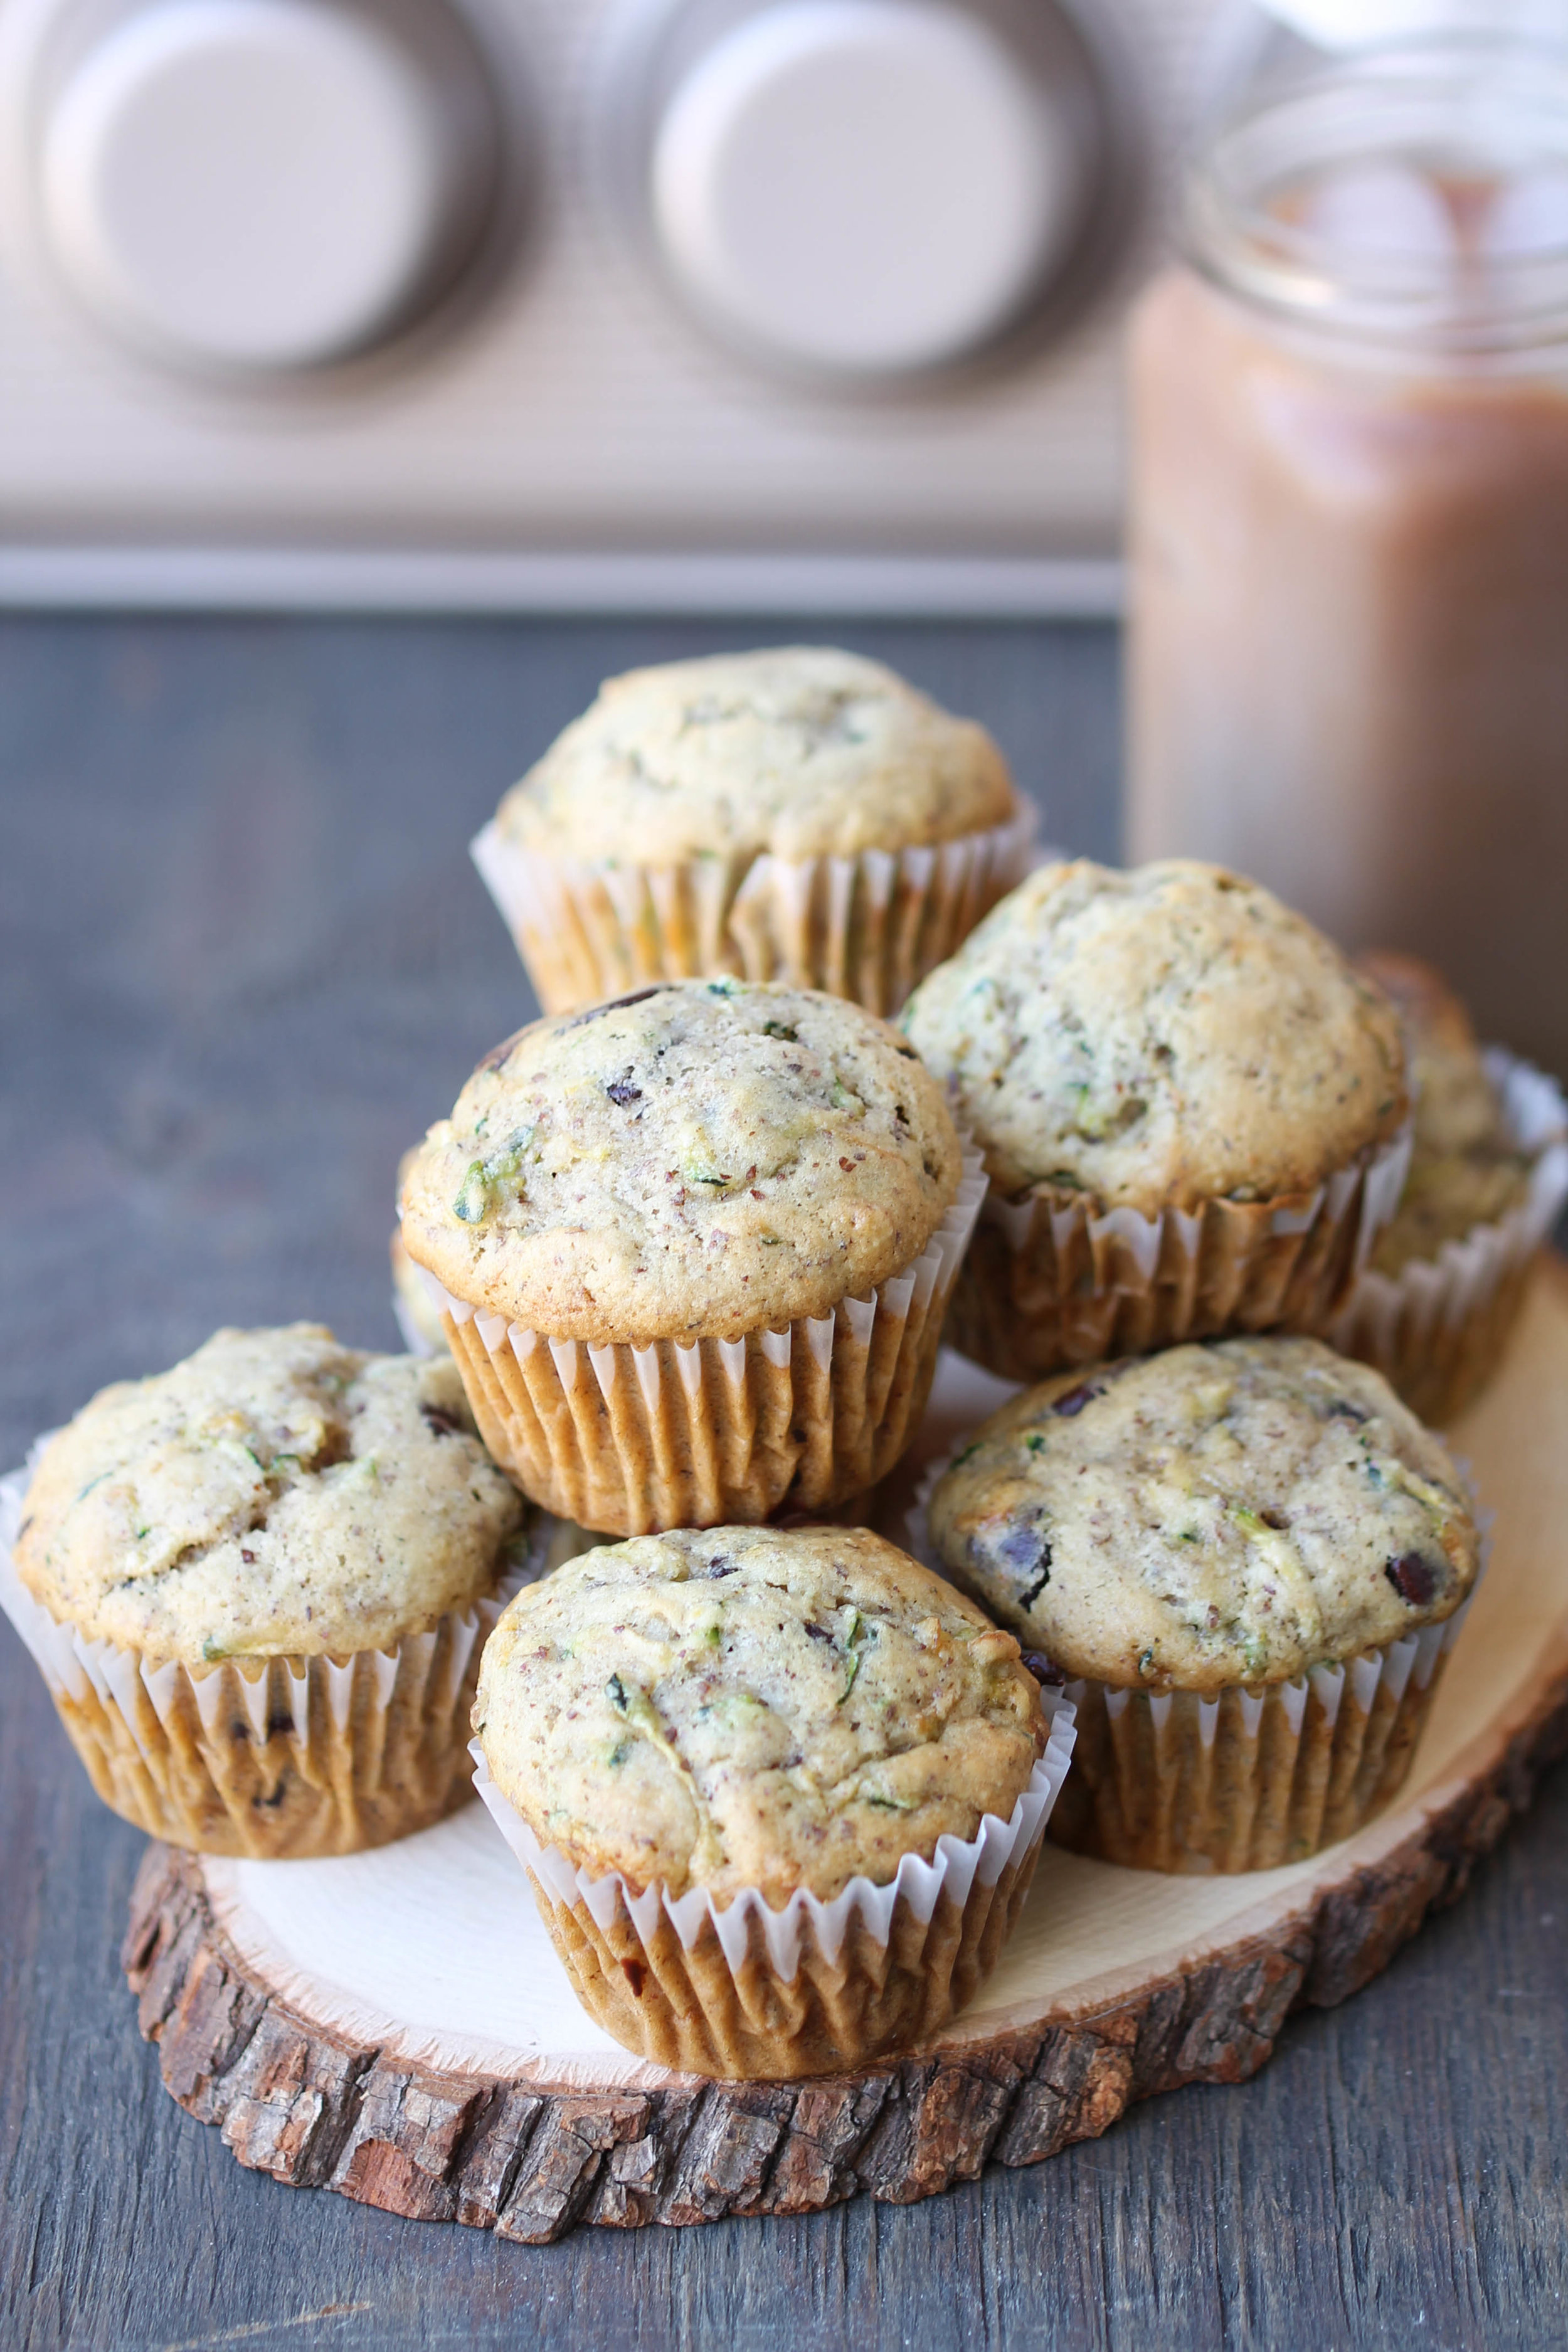 Chocolate Chip Zucchini Muffins are insanely delicious, tender, and easy. Make a batch using leftover zucchini and enjoy them for a quick snack or dessert!